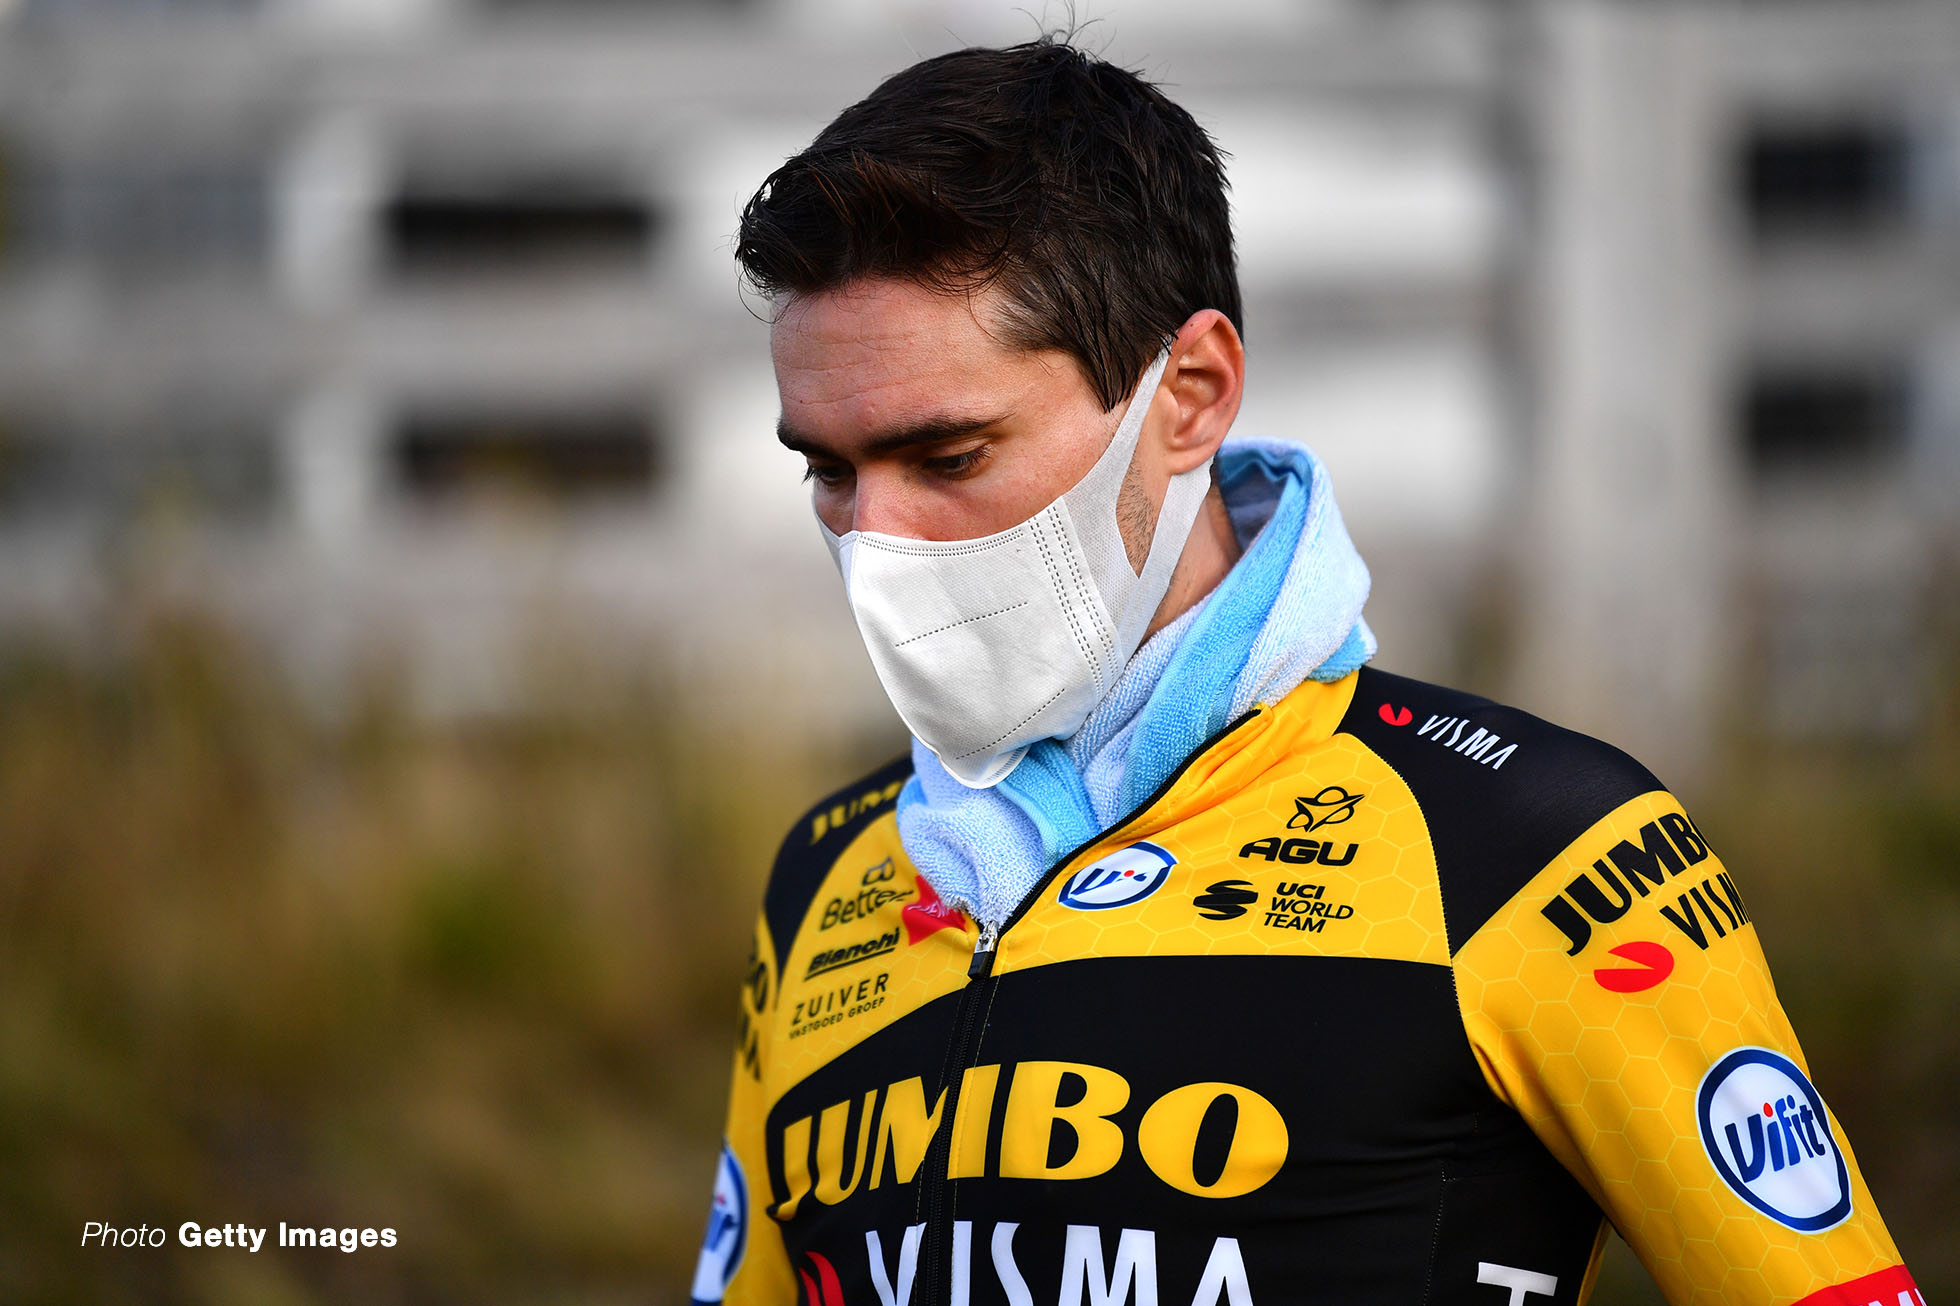 LA PLANCHE, FRANCE - SEPTEMBER 19: Tom Dumoulin of The Netherlands and Team Jumbo - Visma / Mask / 222during the 107th Tour de France 2020, Stage 20 a 36,2km Individual Time Trial stage from Lure to La Planche Des Belles Filles 1035m / ITT / #TDF2020 / @LeTour / on September 19, 2020 in La Planche, France. (Photo by Stuart Franklin/Getty Images,)